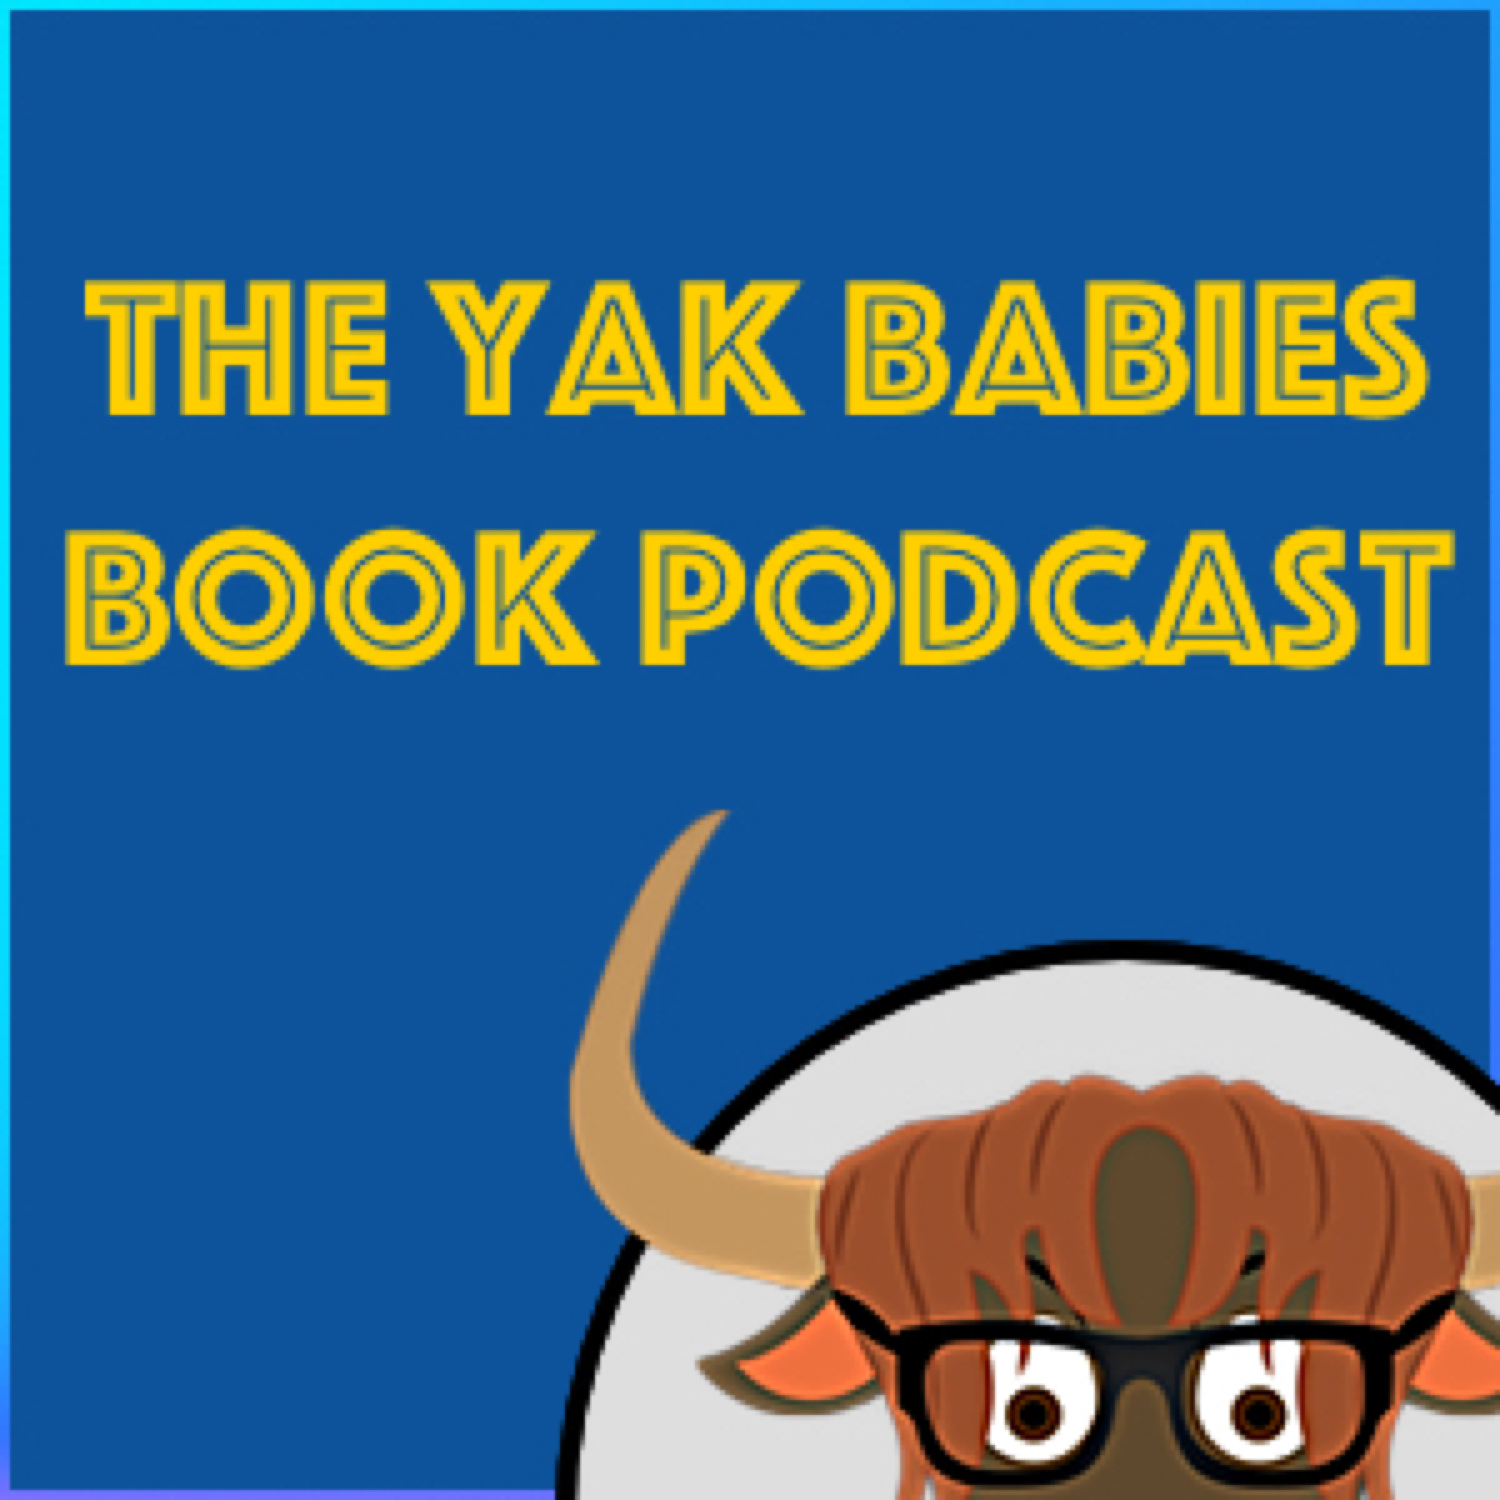 The Yak Babies Book Podcast